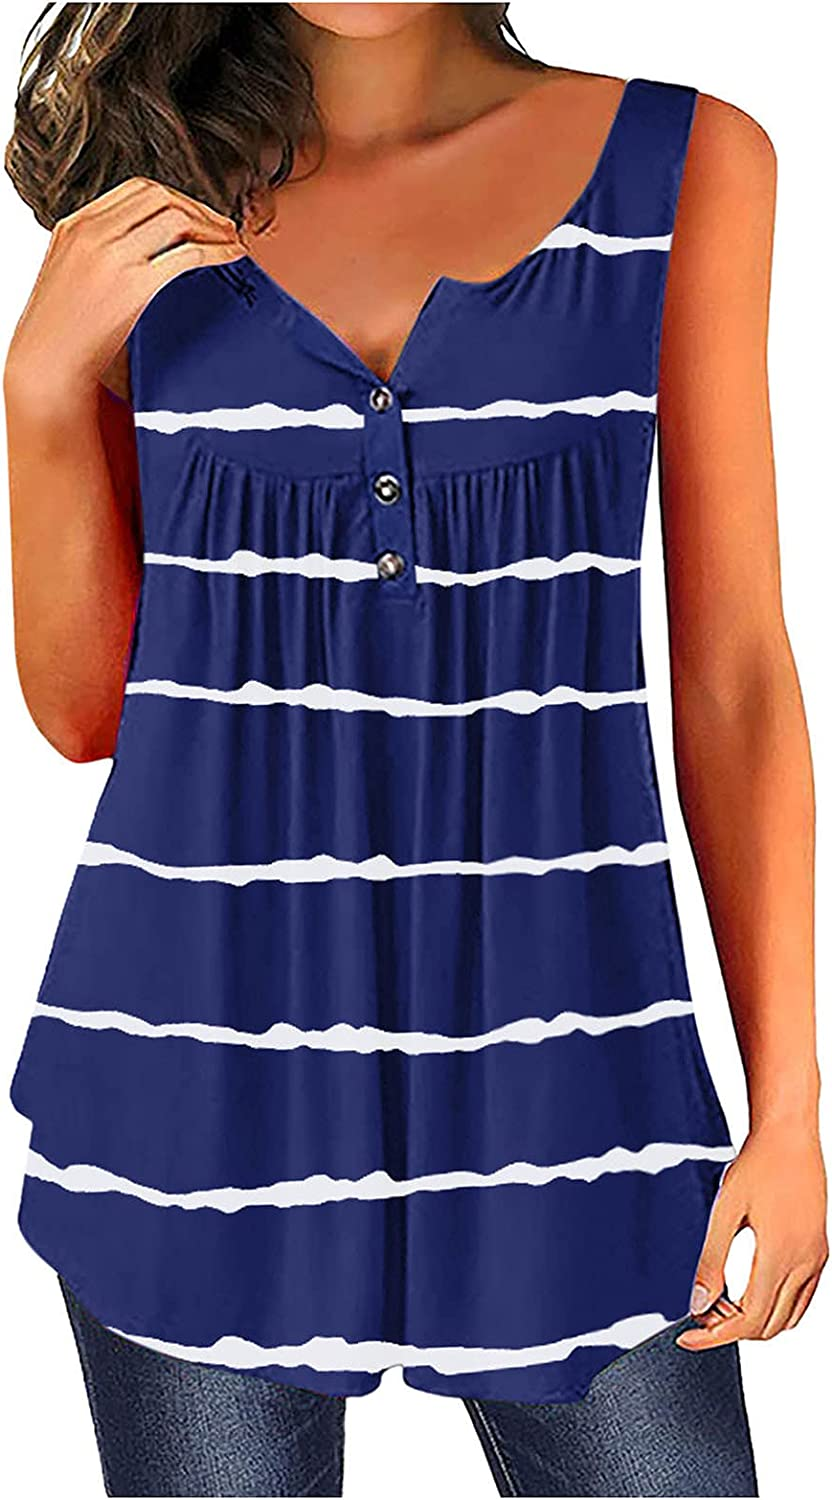 shaozheny Womens Sleeveless Striped T-Shirts Summer Vest Tops Casual O-Neck Loose Tunic Tops with Buttons Comfy Blouse Tops